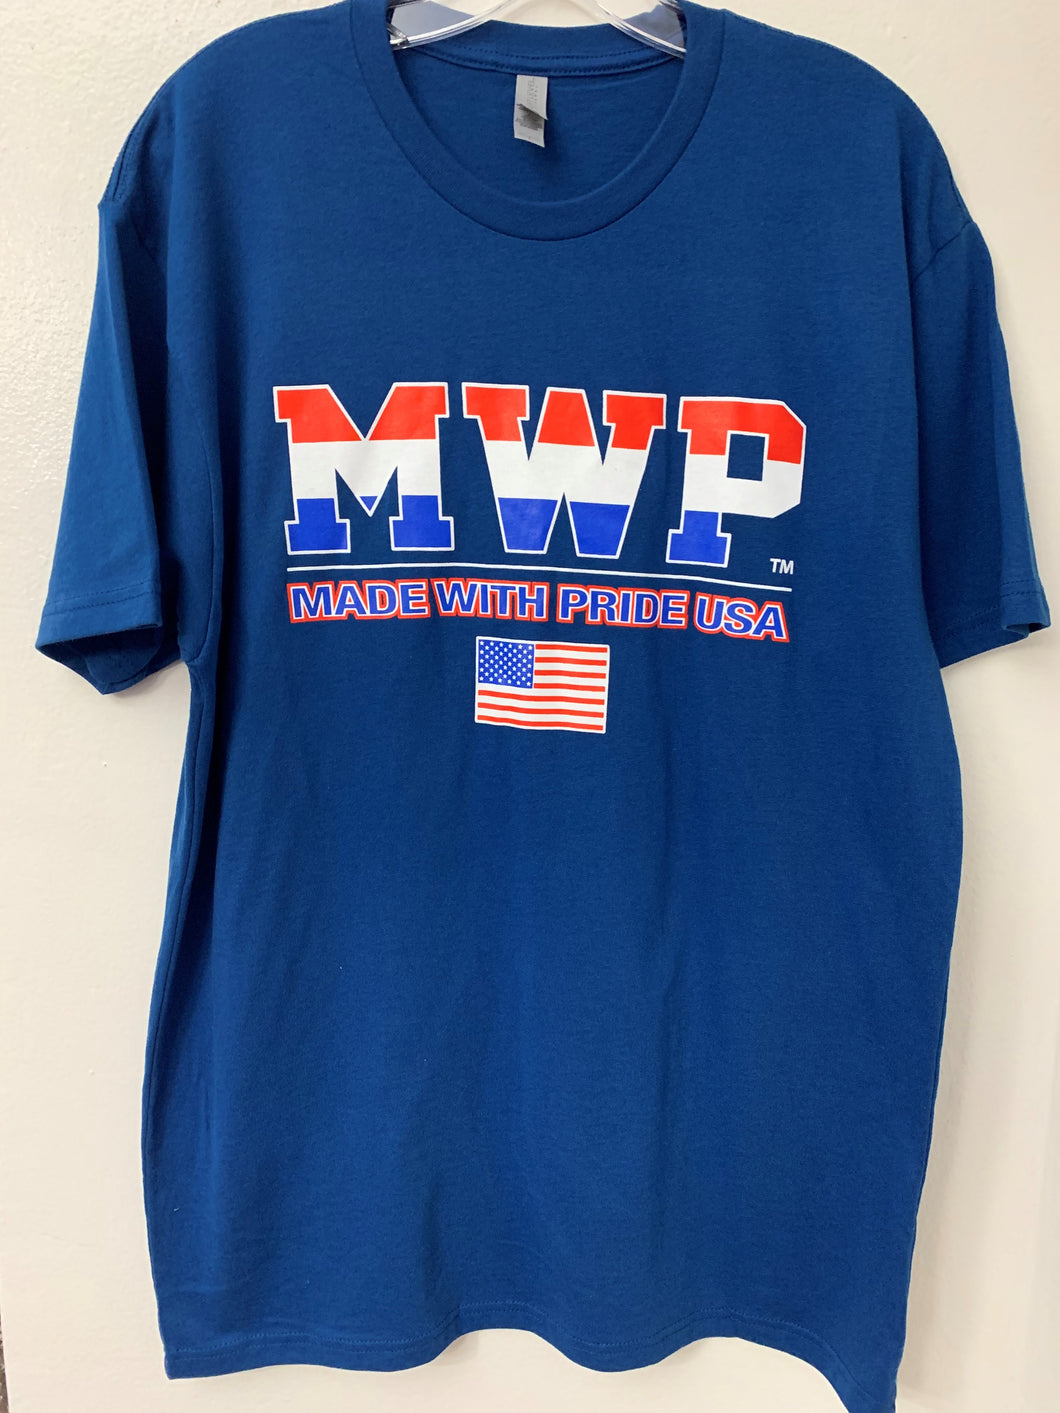 MEN'S MWP (MADE WITH PRIDE USA) T-Shirt